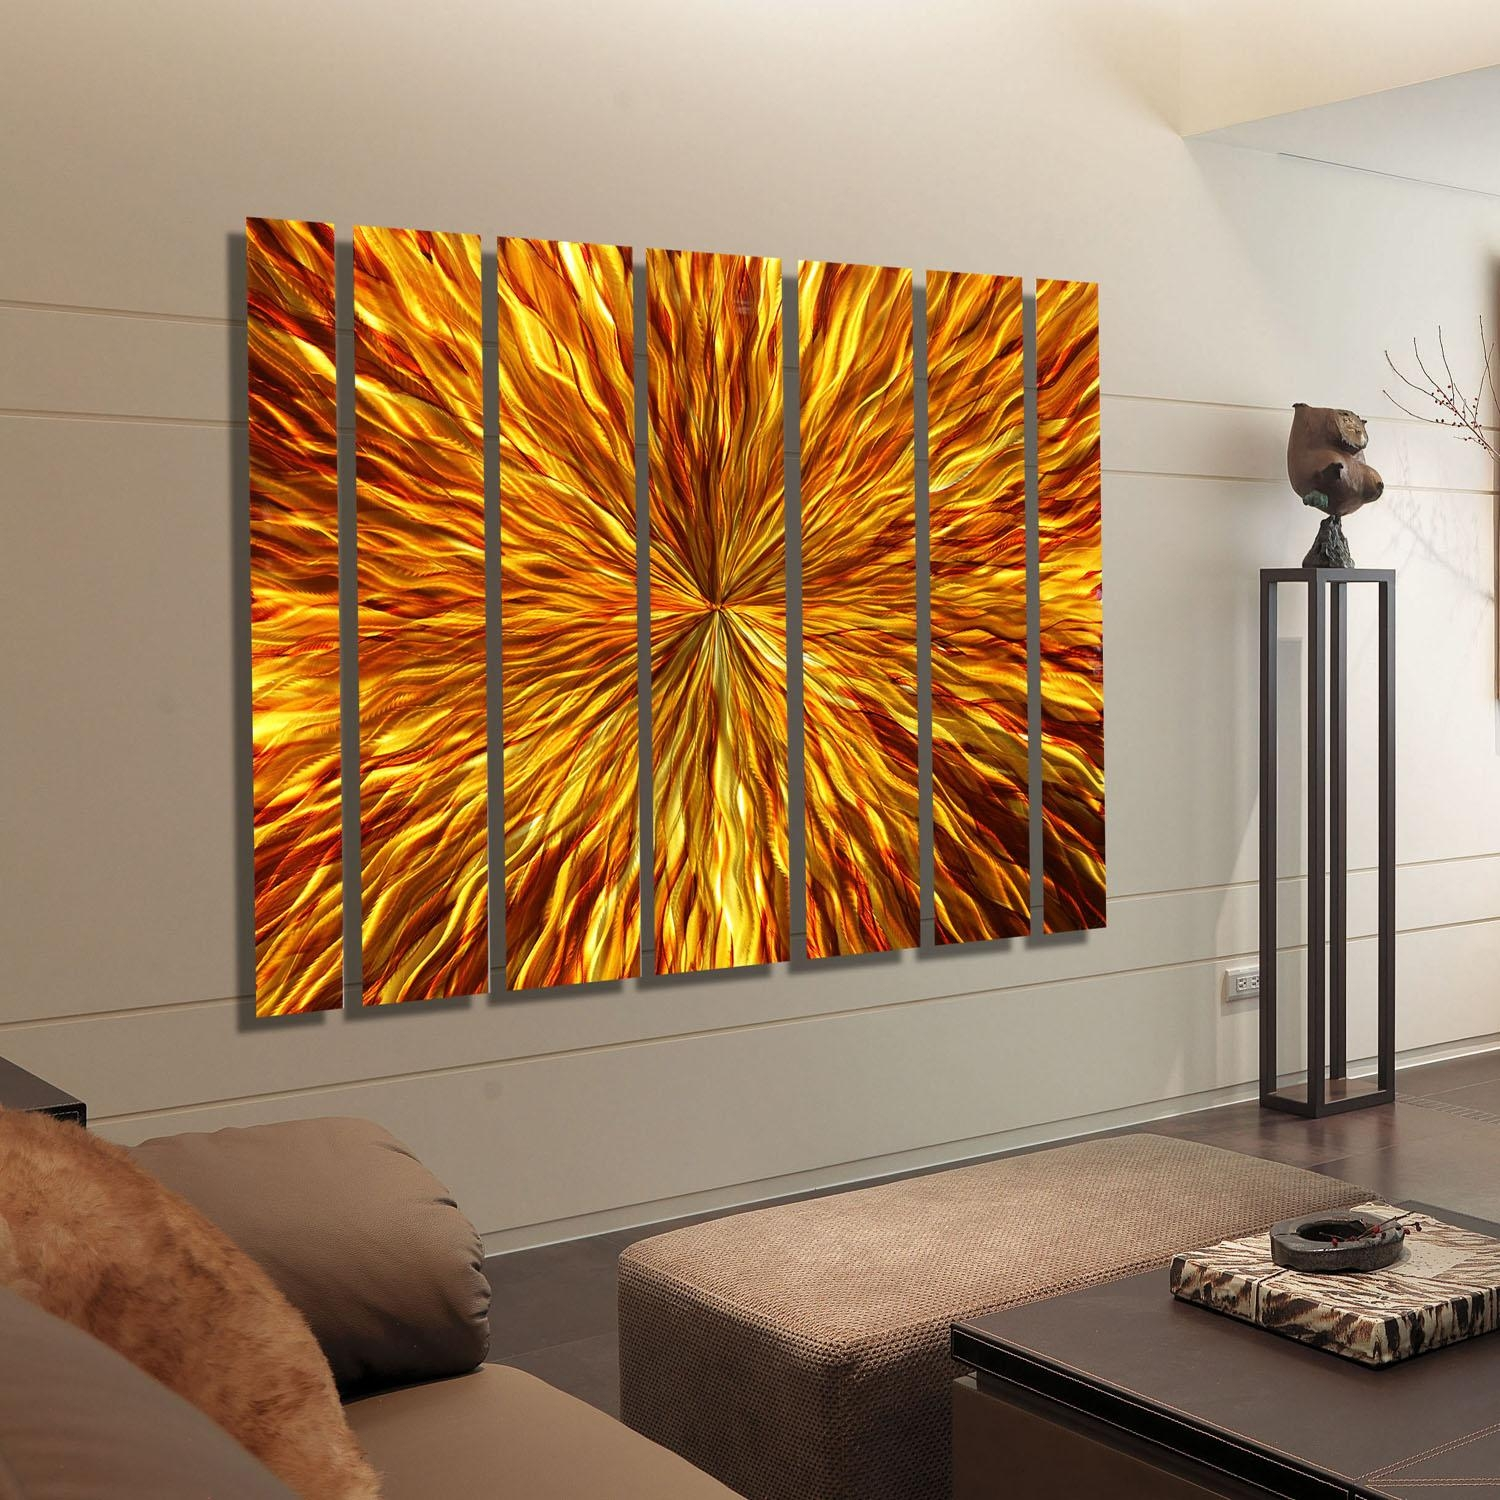 Amber Vortex Xl  Extra Large Modern Metal Wall Artjon Allen With Regard To  Large Abstract